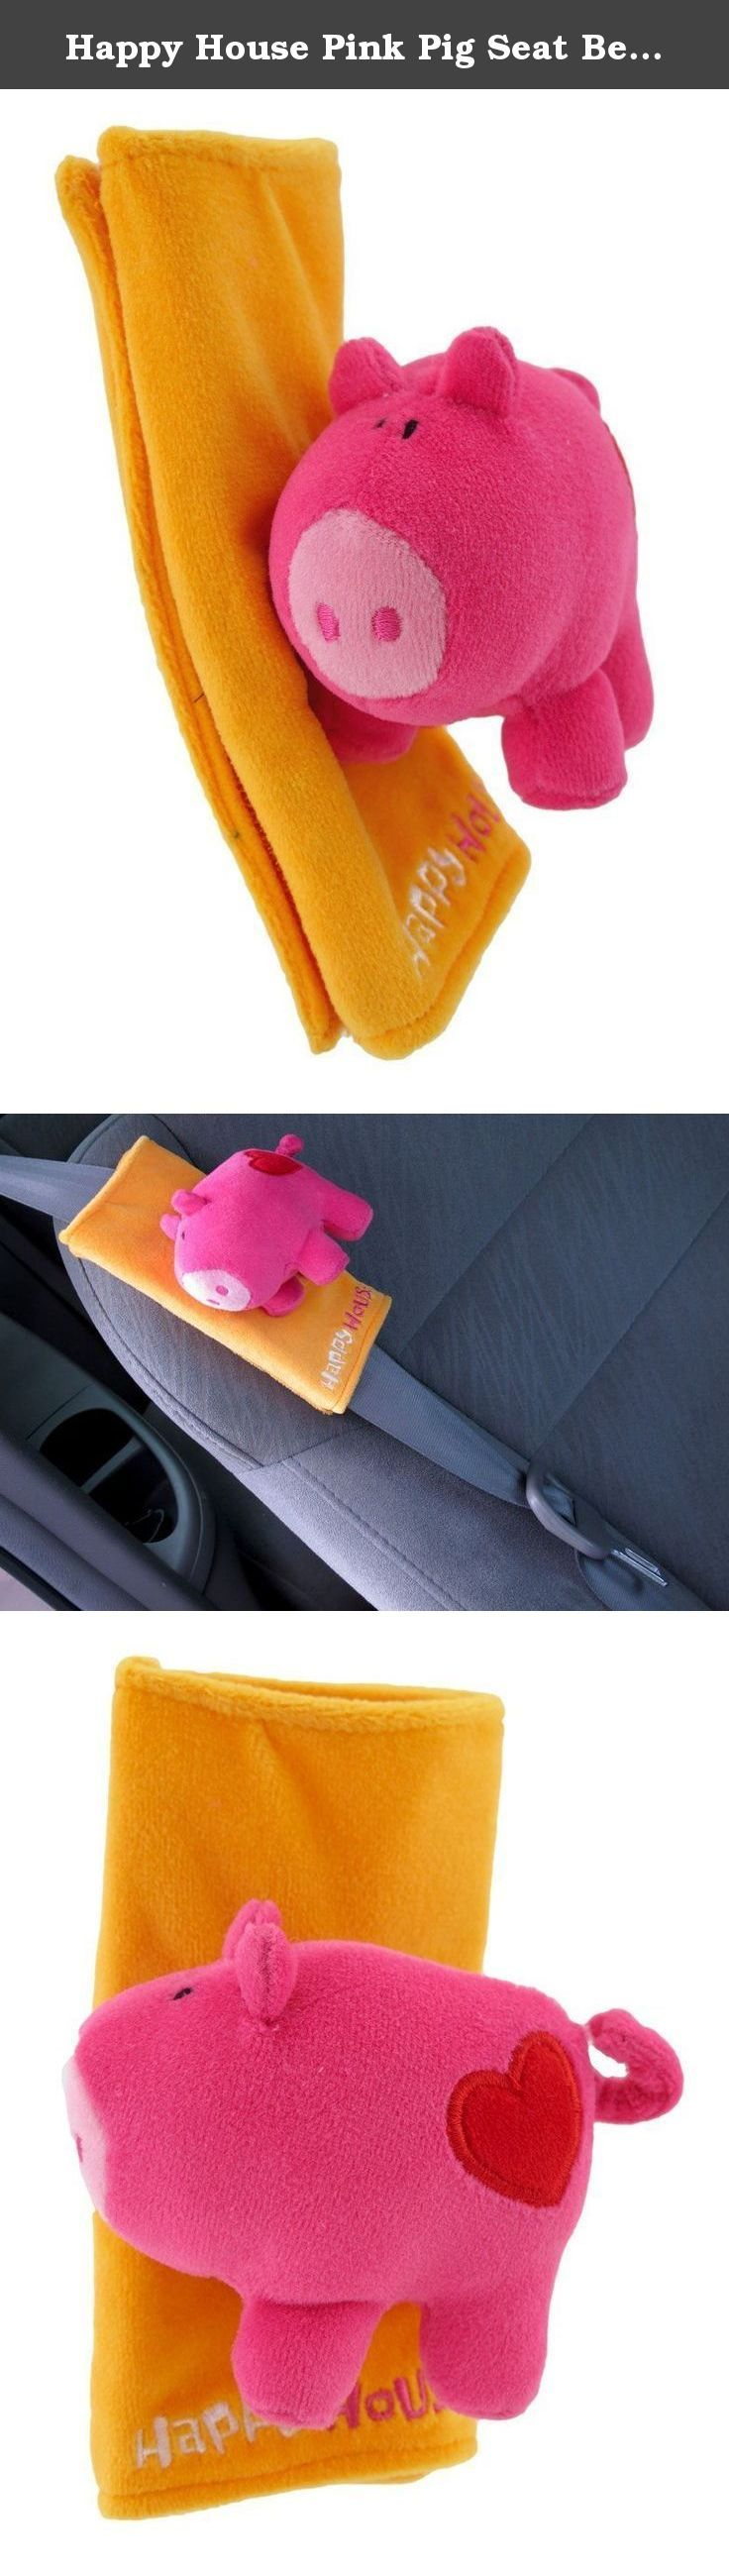 Happy House Pink Pig Seat Belt Cover. Seat belts can be fun, fashionable, and comfortable for your kids with these adorable pink piggy seat belt covers! They are made of 100% polyester, the pigs are stuffed with polyfill, and the covers secure to the seat belt with velcro. They are easily removable, and are machine washable in cold water. They measure 6 1/4 inches tall, 9 1/2 inches wide, and are sure to brighten your child`s day while reminding them that safety comes first.